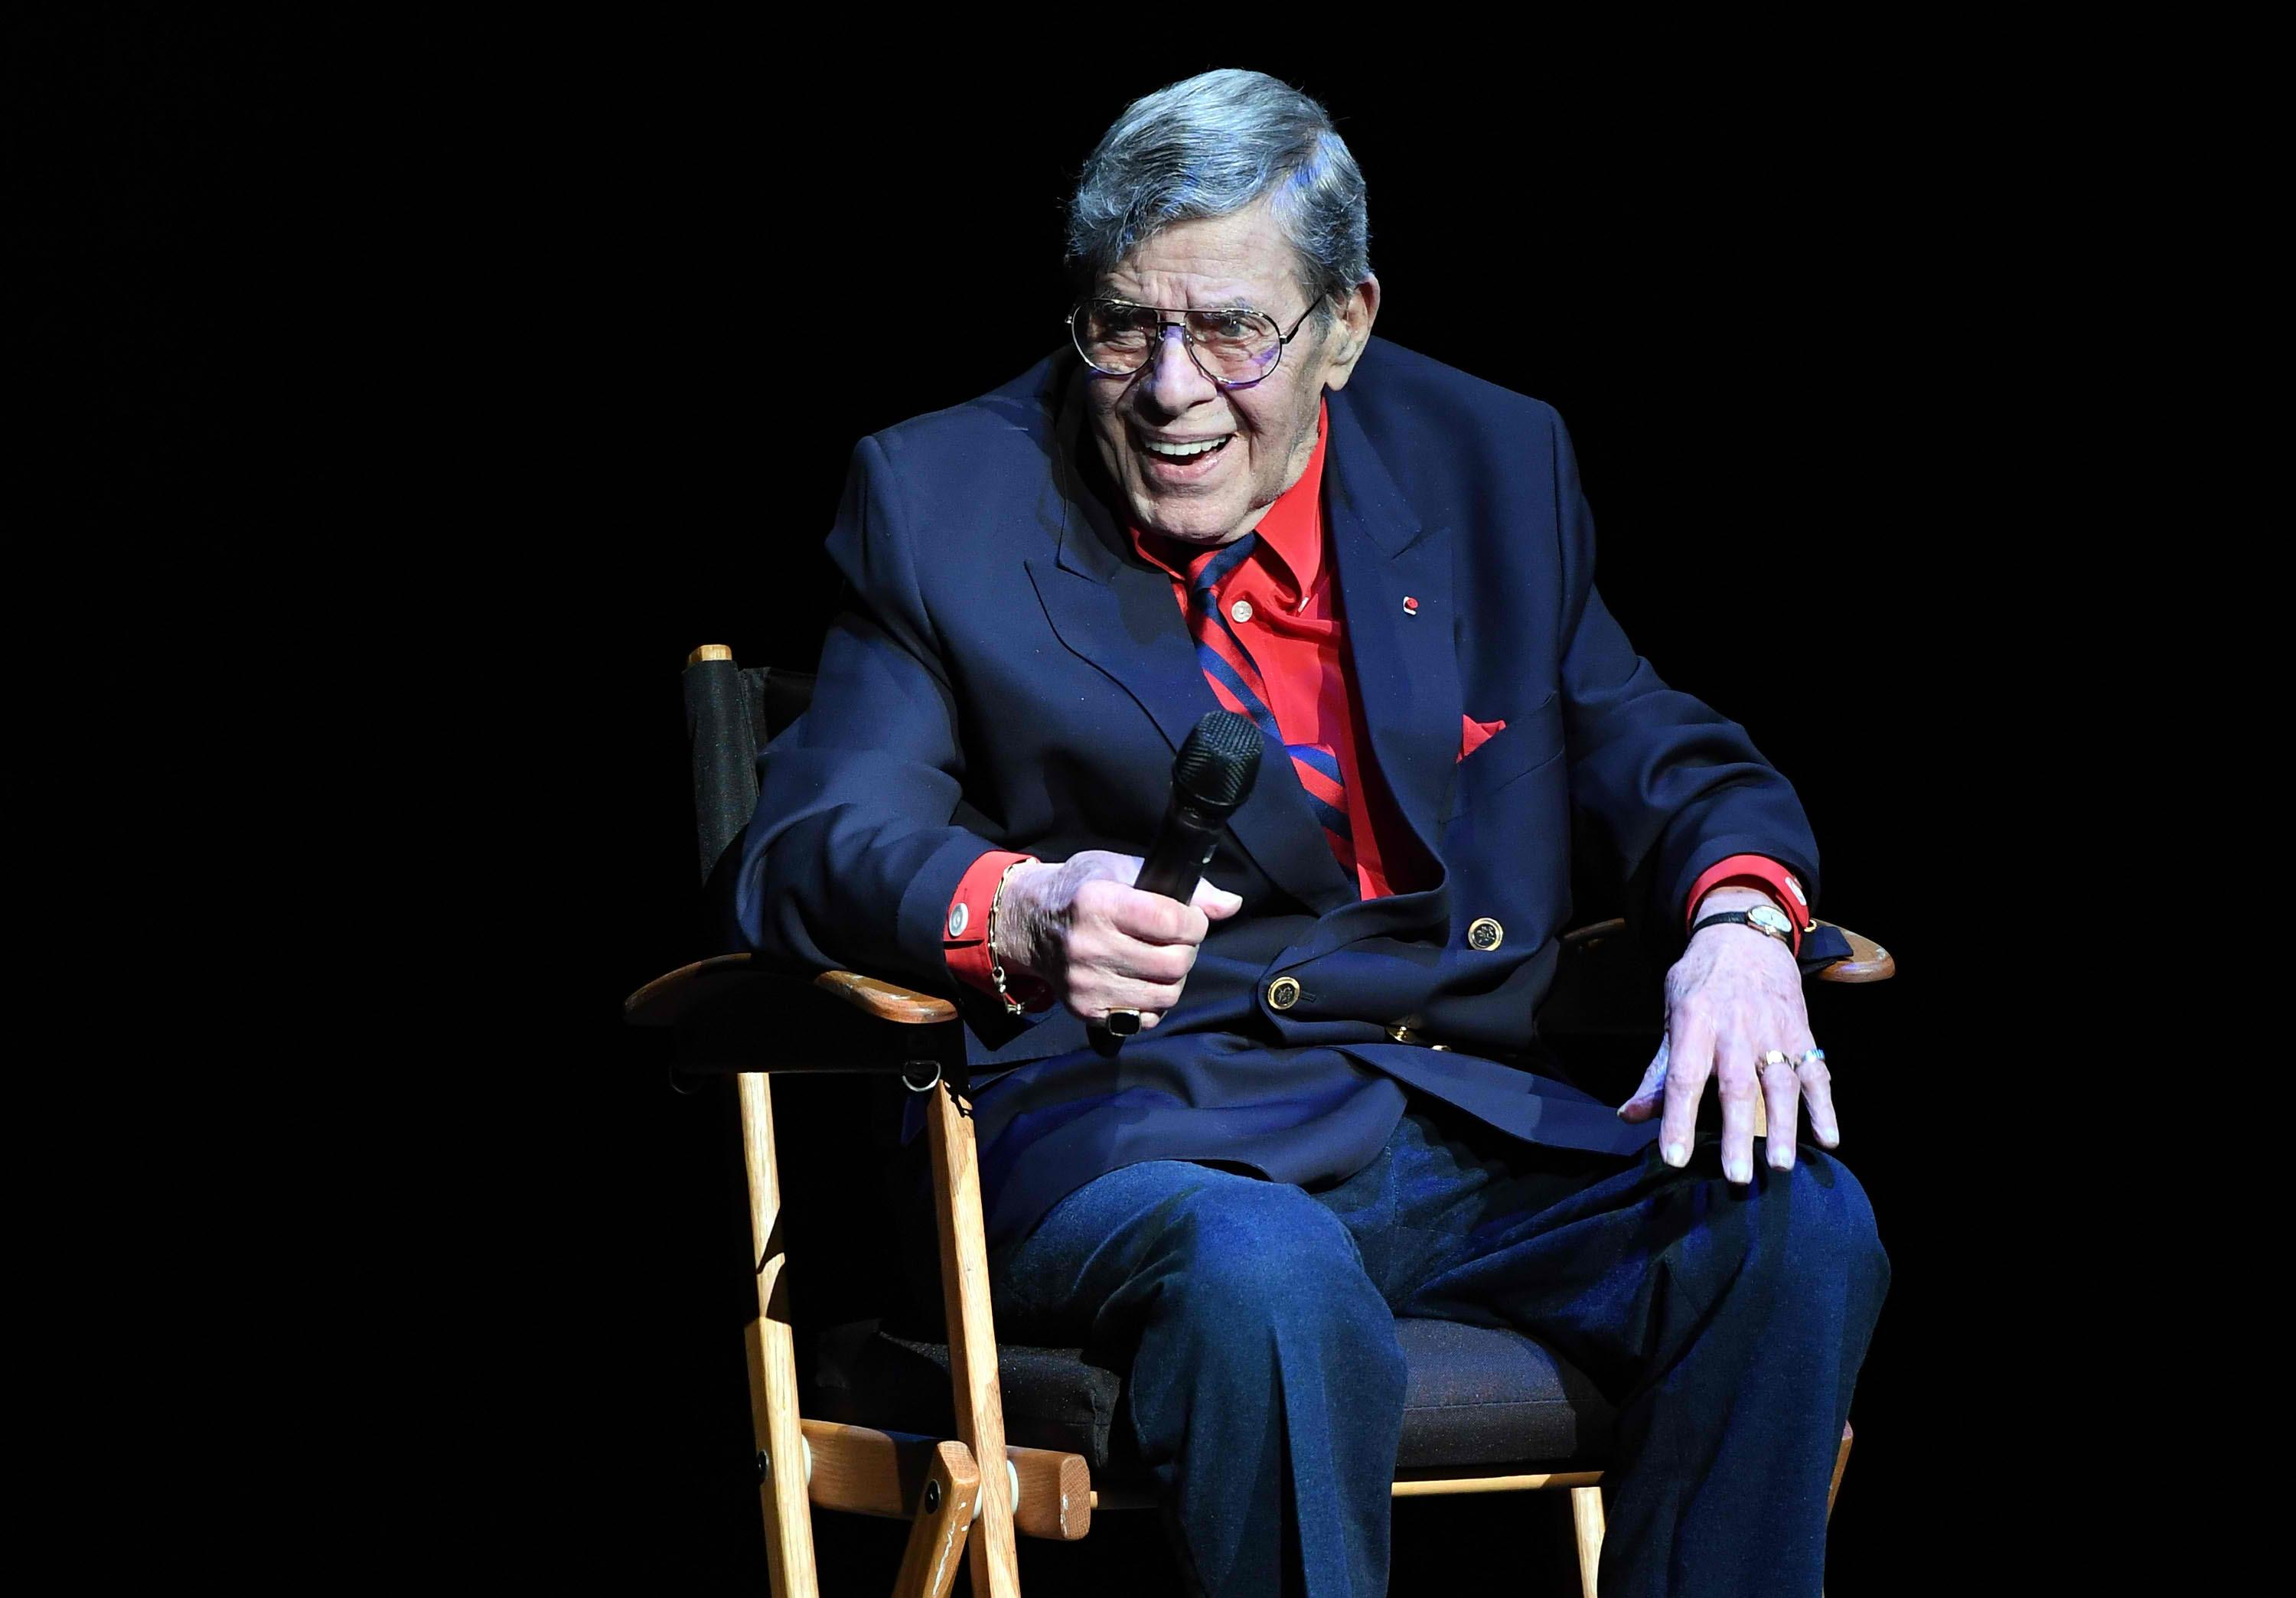 'A genius comedian': Hollywood says goodbye to Jerry Lewis